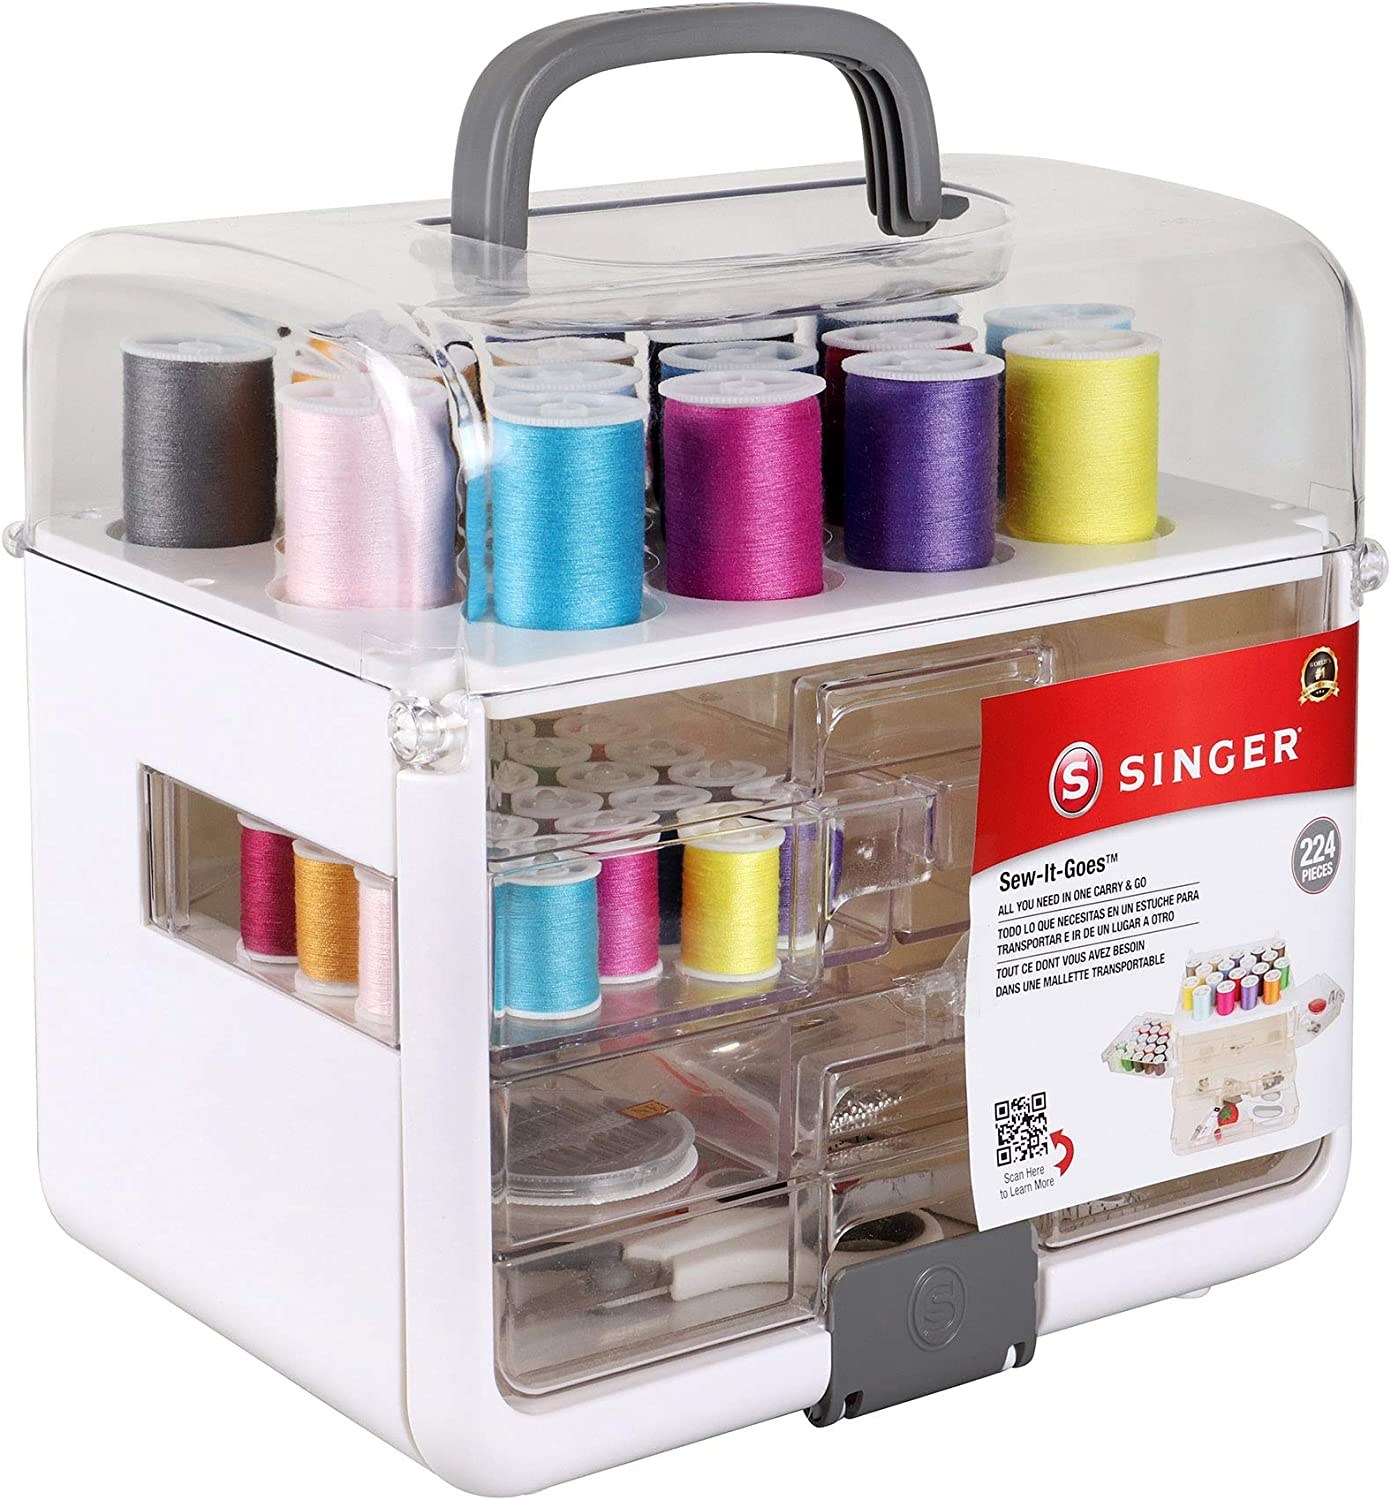 Super sale Singer Sew-It-Goes Max 70% OFF 224 Piece - Craft Kit Organizer S Sewing